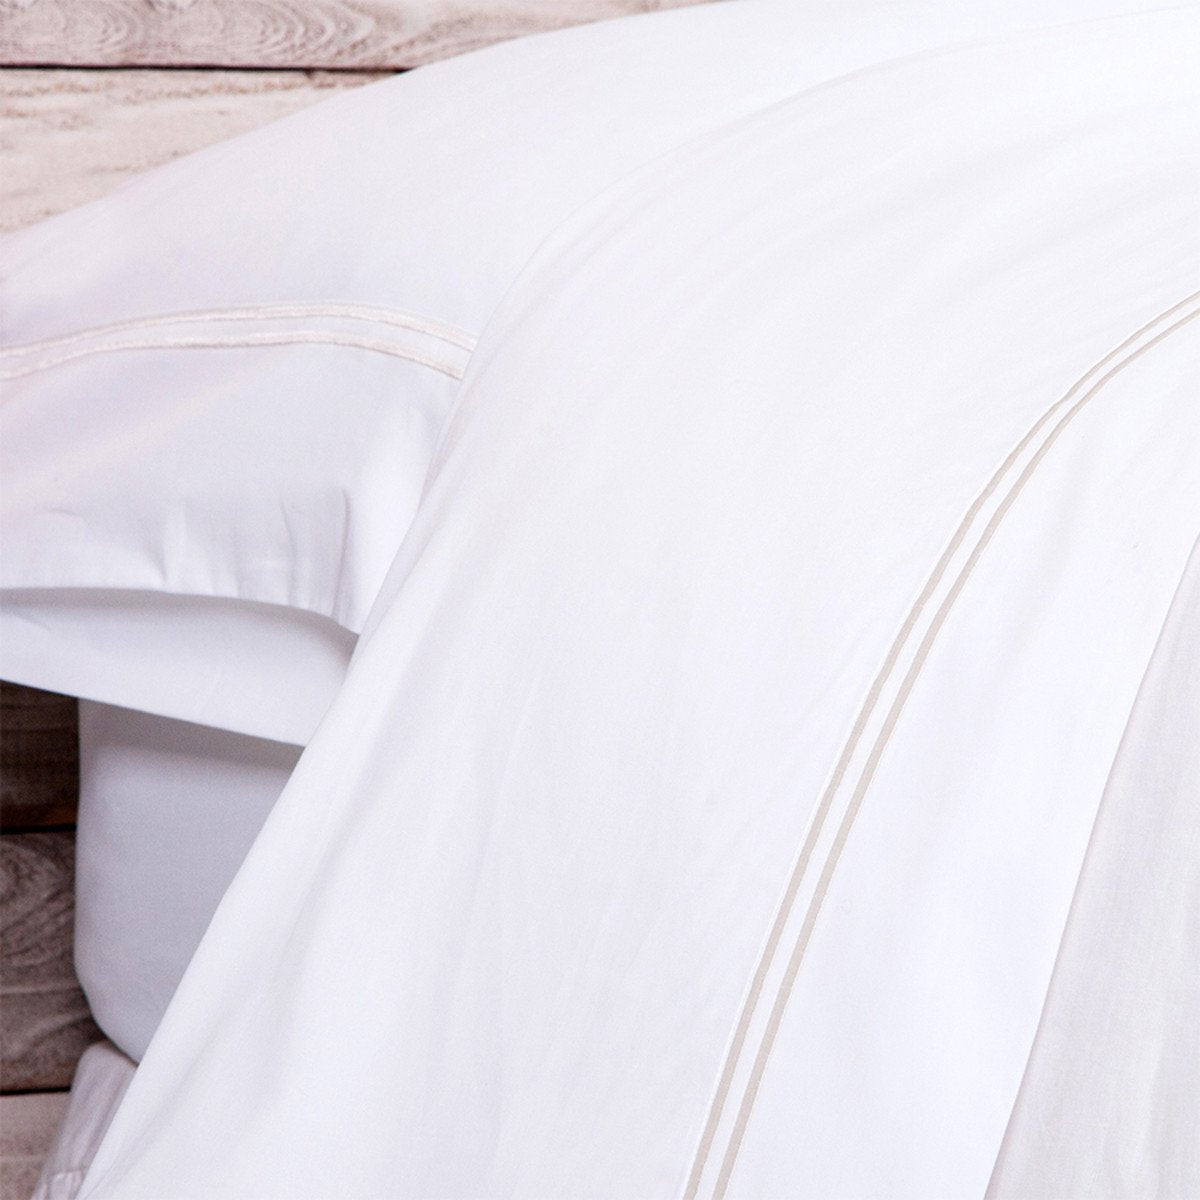 Cotton Sateen Collection in White/Taupe design by Pom Pom at Home